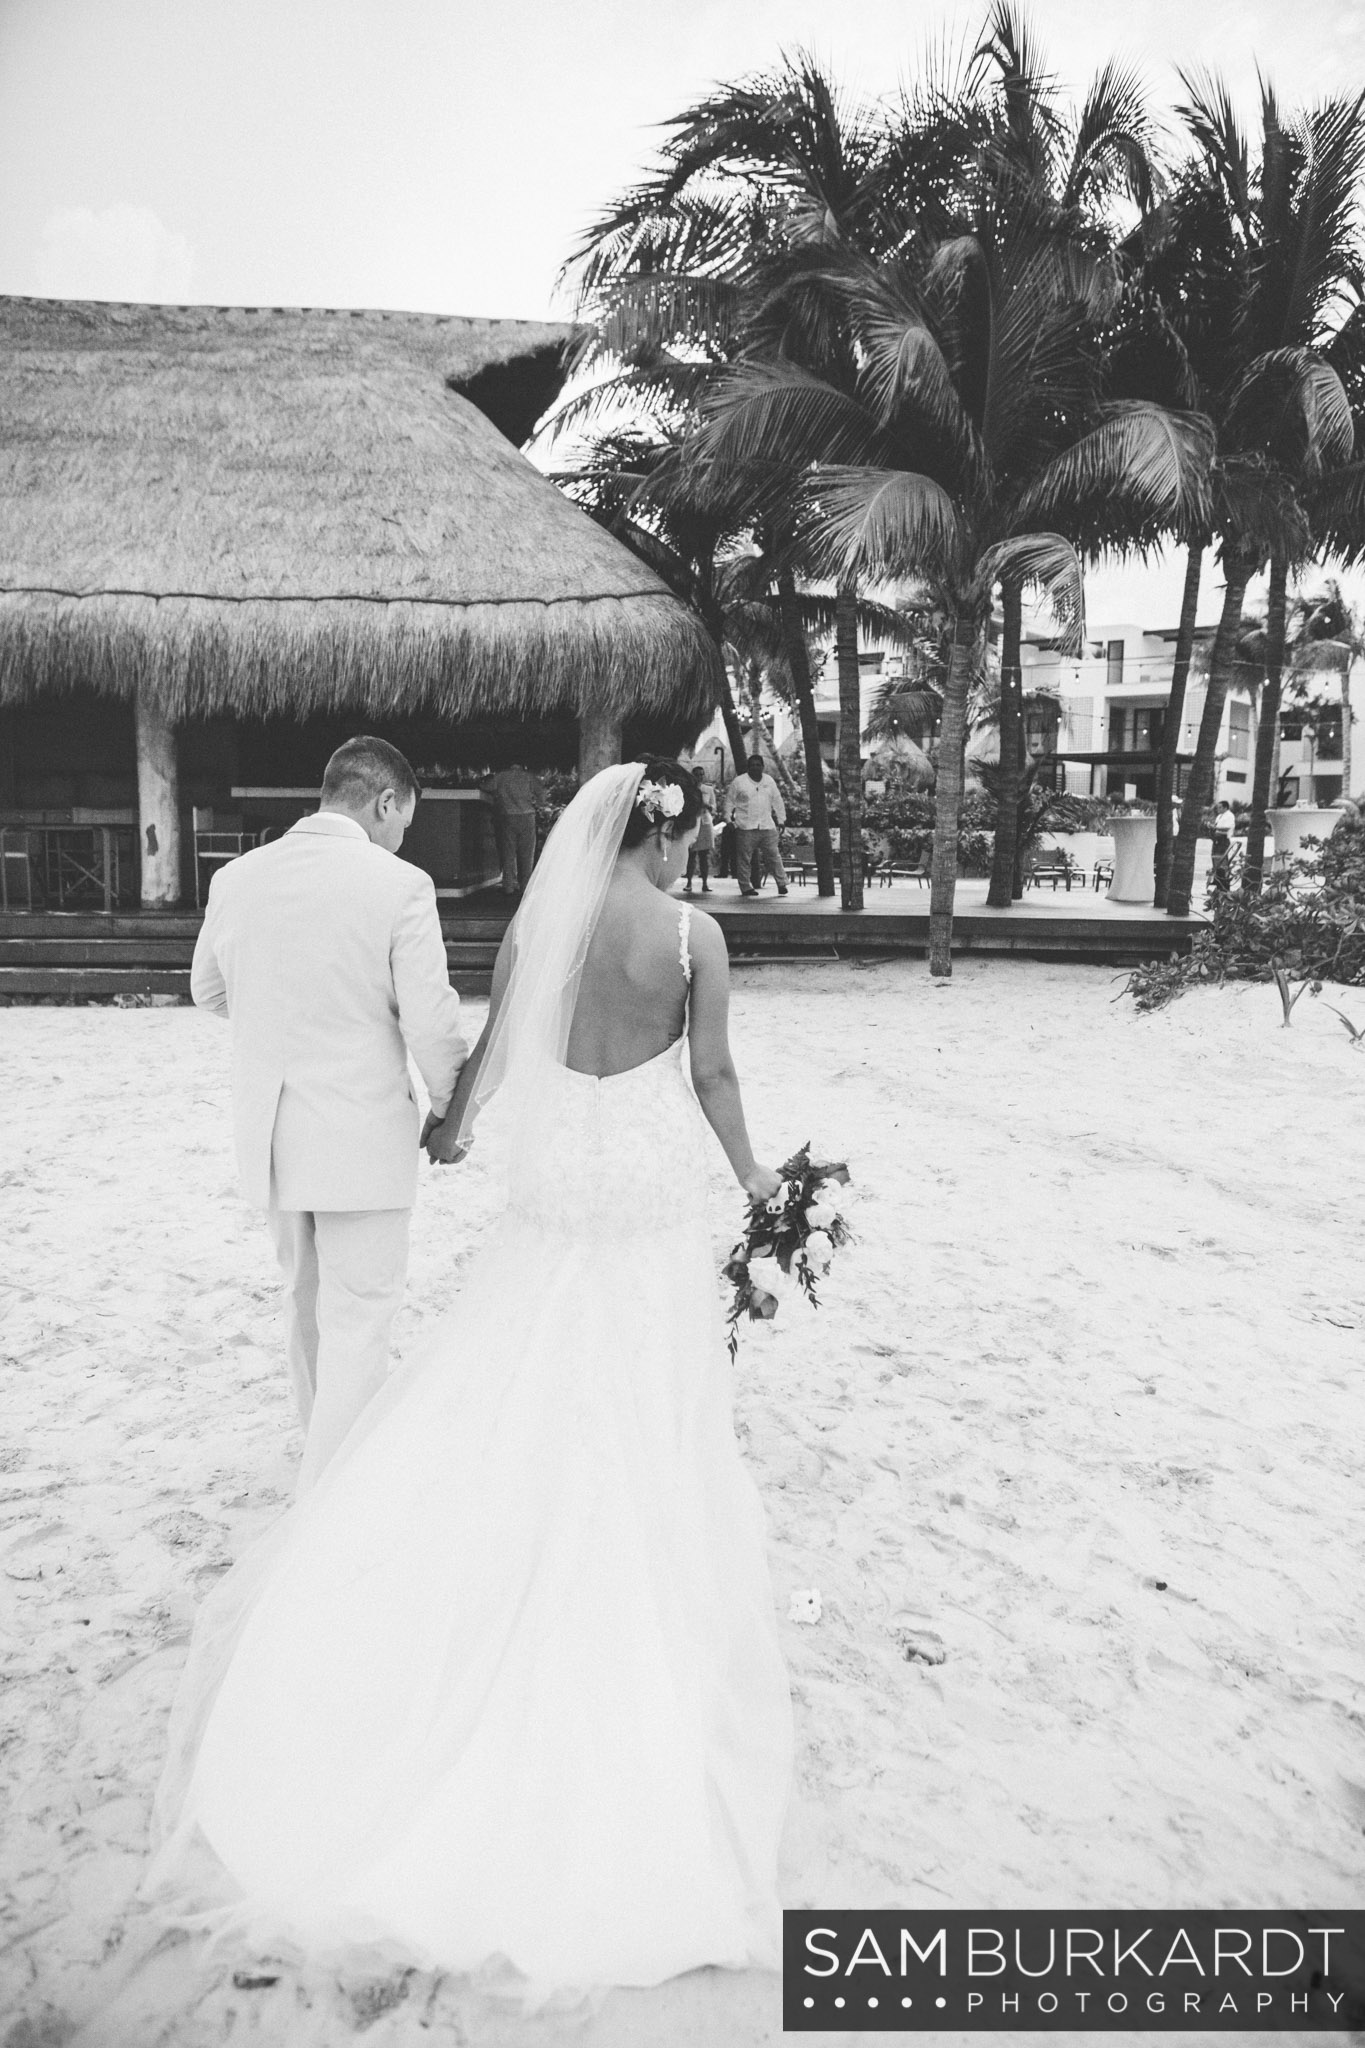 samburkardt-mexico-wedding-beach-0043.jpg